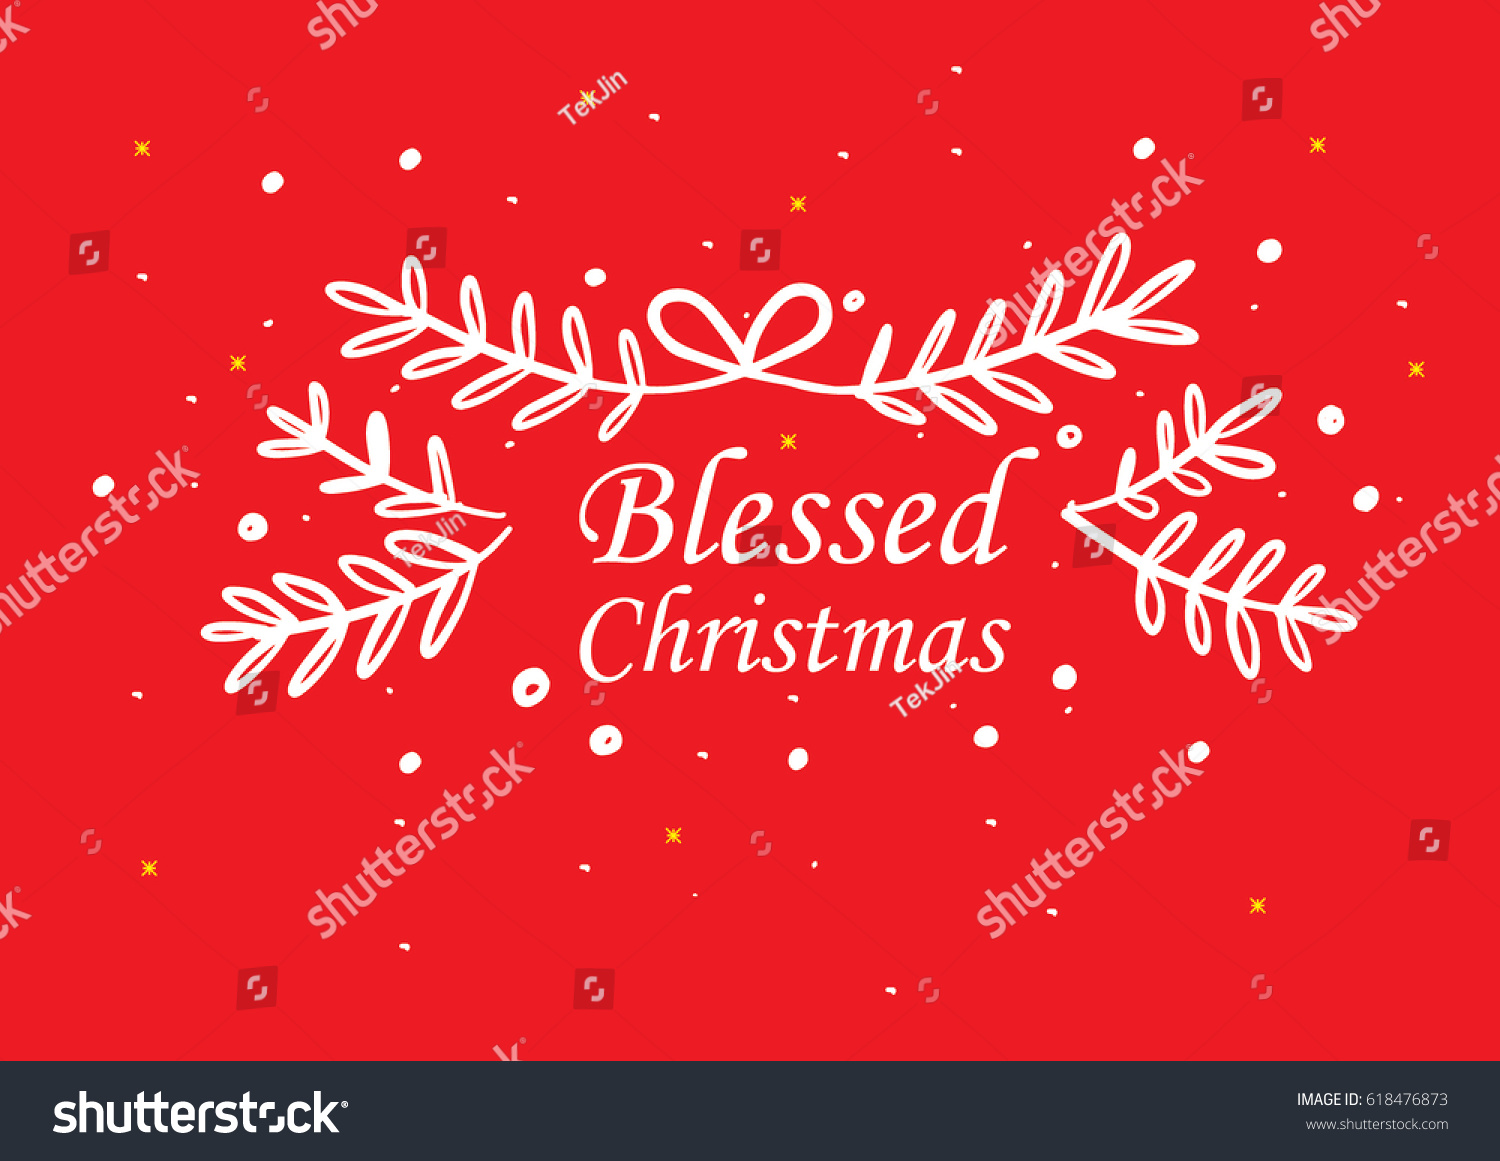 Blessed christmas greeting card design hand stock vector 618476873 blessed christmas greeting card design with hand drawn floral pattern kristyandbryce Images